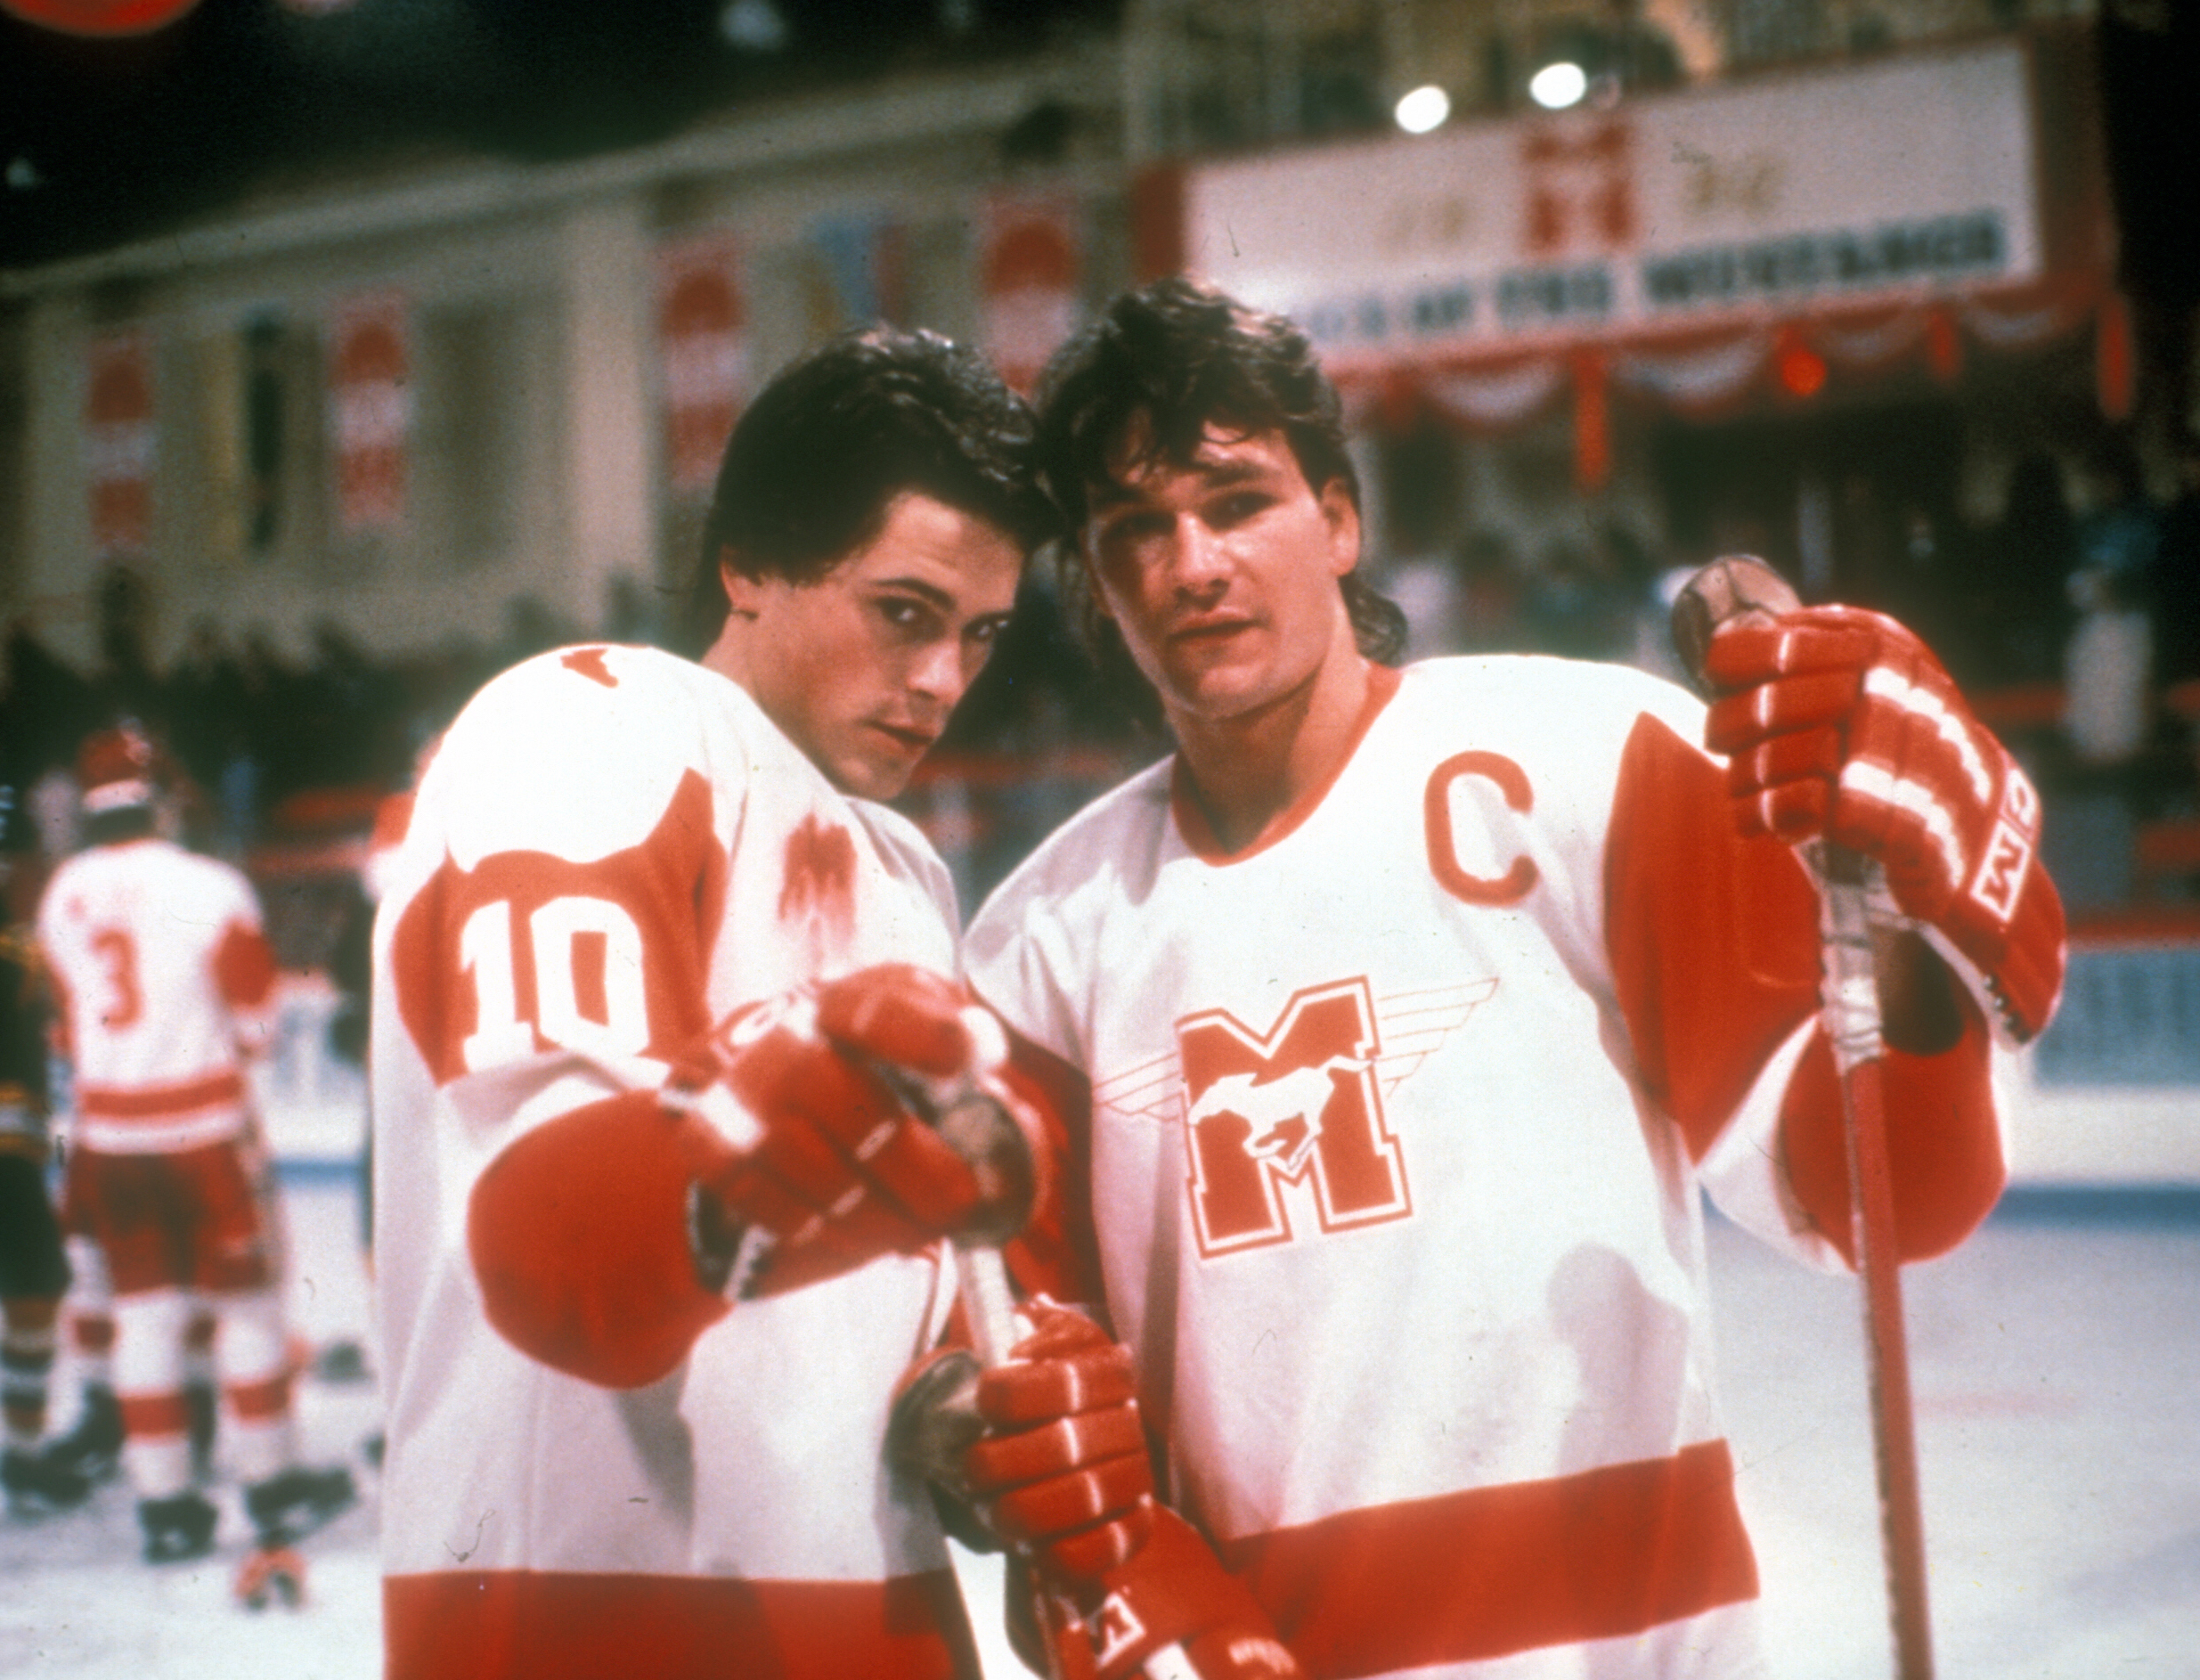 """Rob Lowe (as Dean Youngblood) and Patrick Swayze (as Derek Sutton) are shown on the set of """"Youngblood"""" in 1986."""